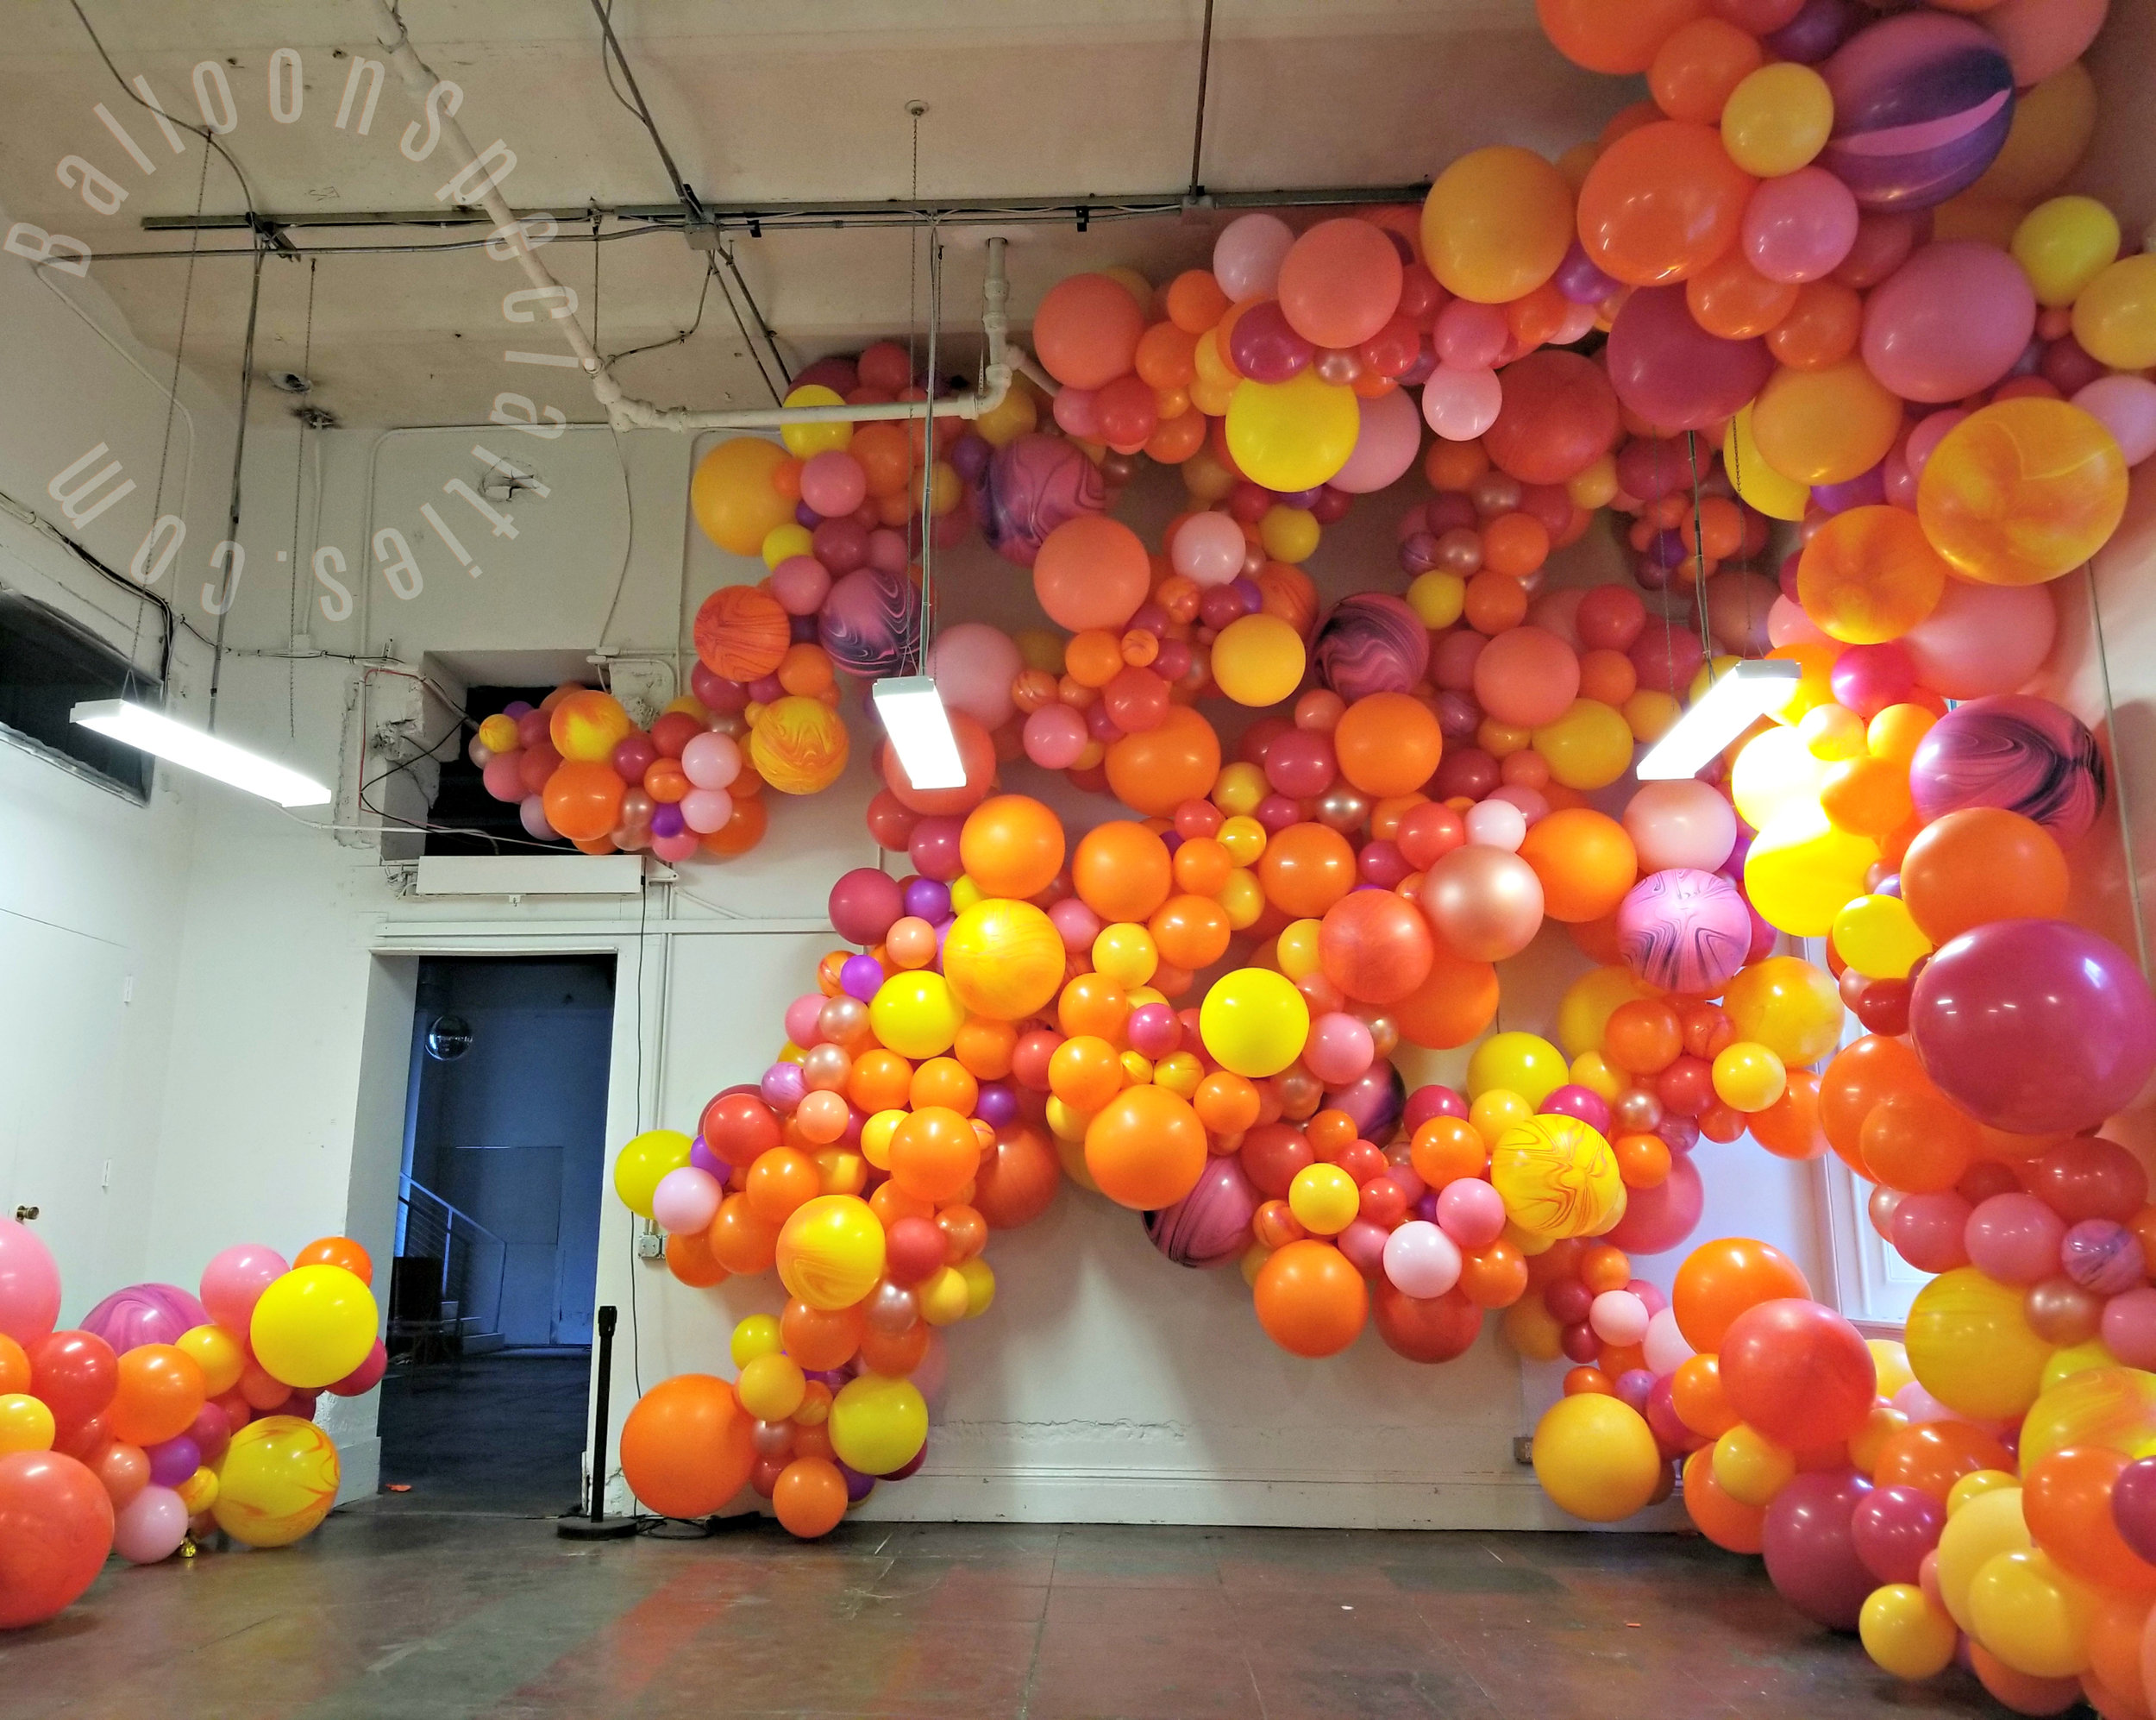 San Francisco Mint Balloon Wall Garlands  On Ceiling Zim Balloon Specialties.jpg